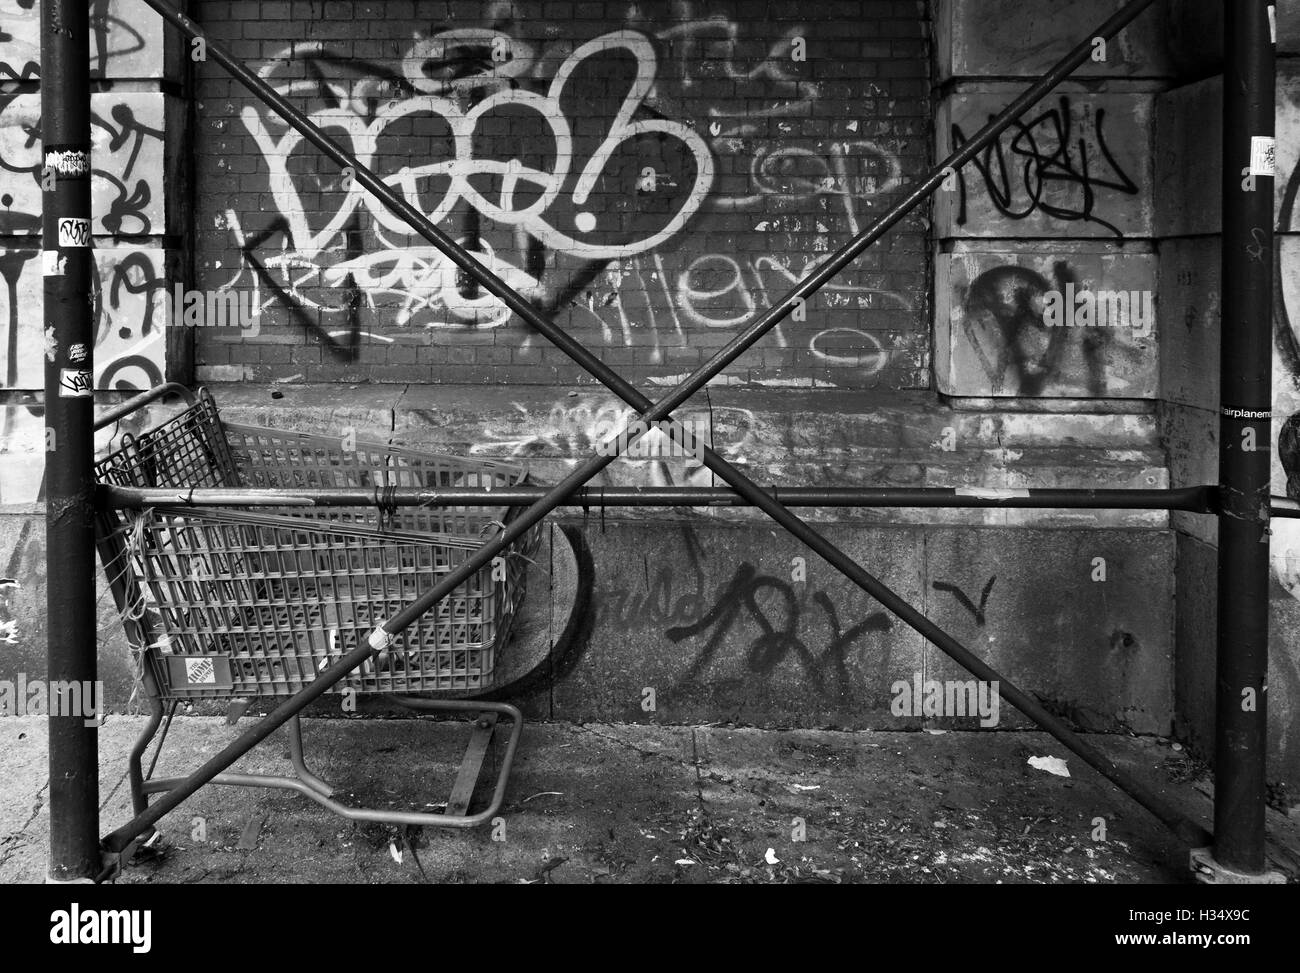 Monochrome gritty image of scaffolding crossed poles with abandoned shopping trolley and a graffiti covered wall - Stock Image